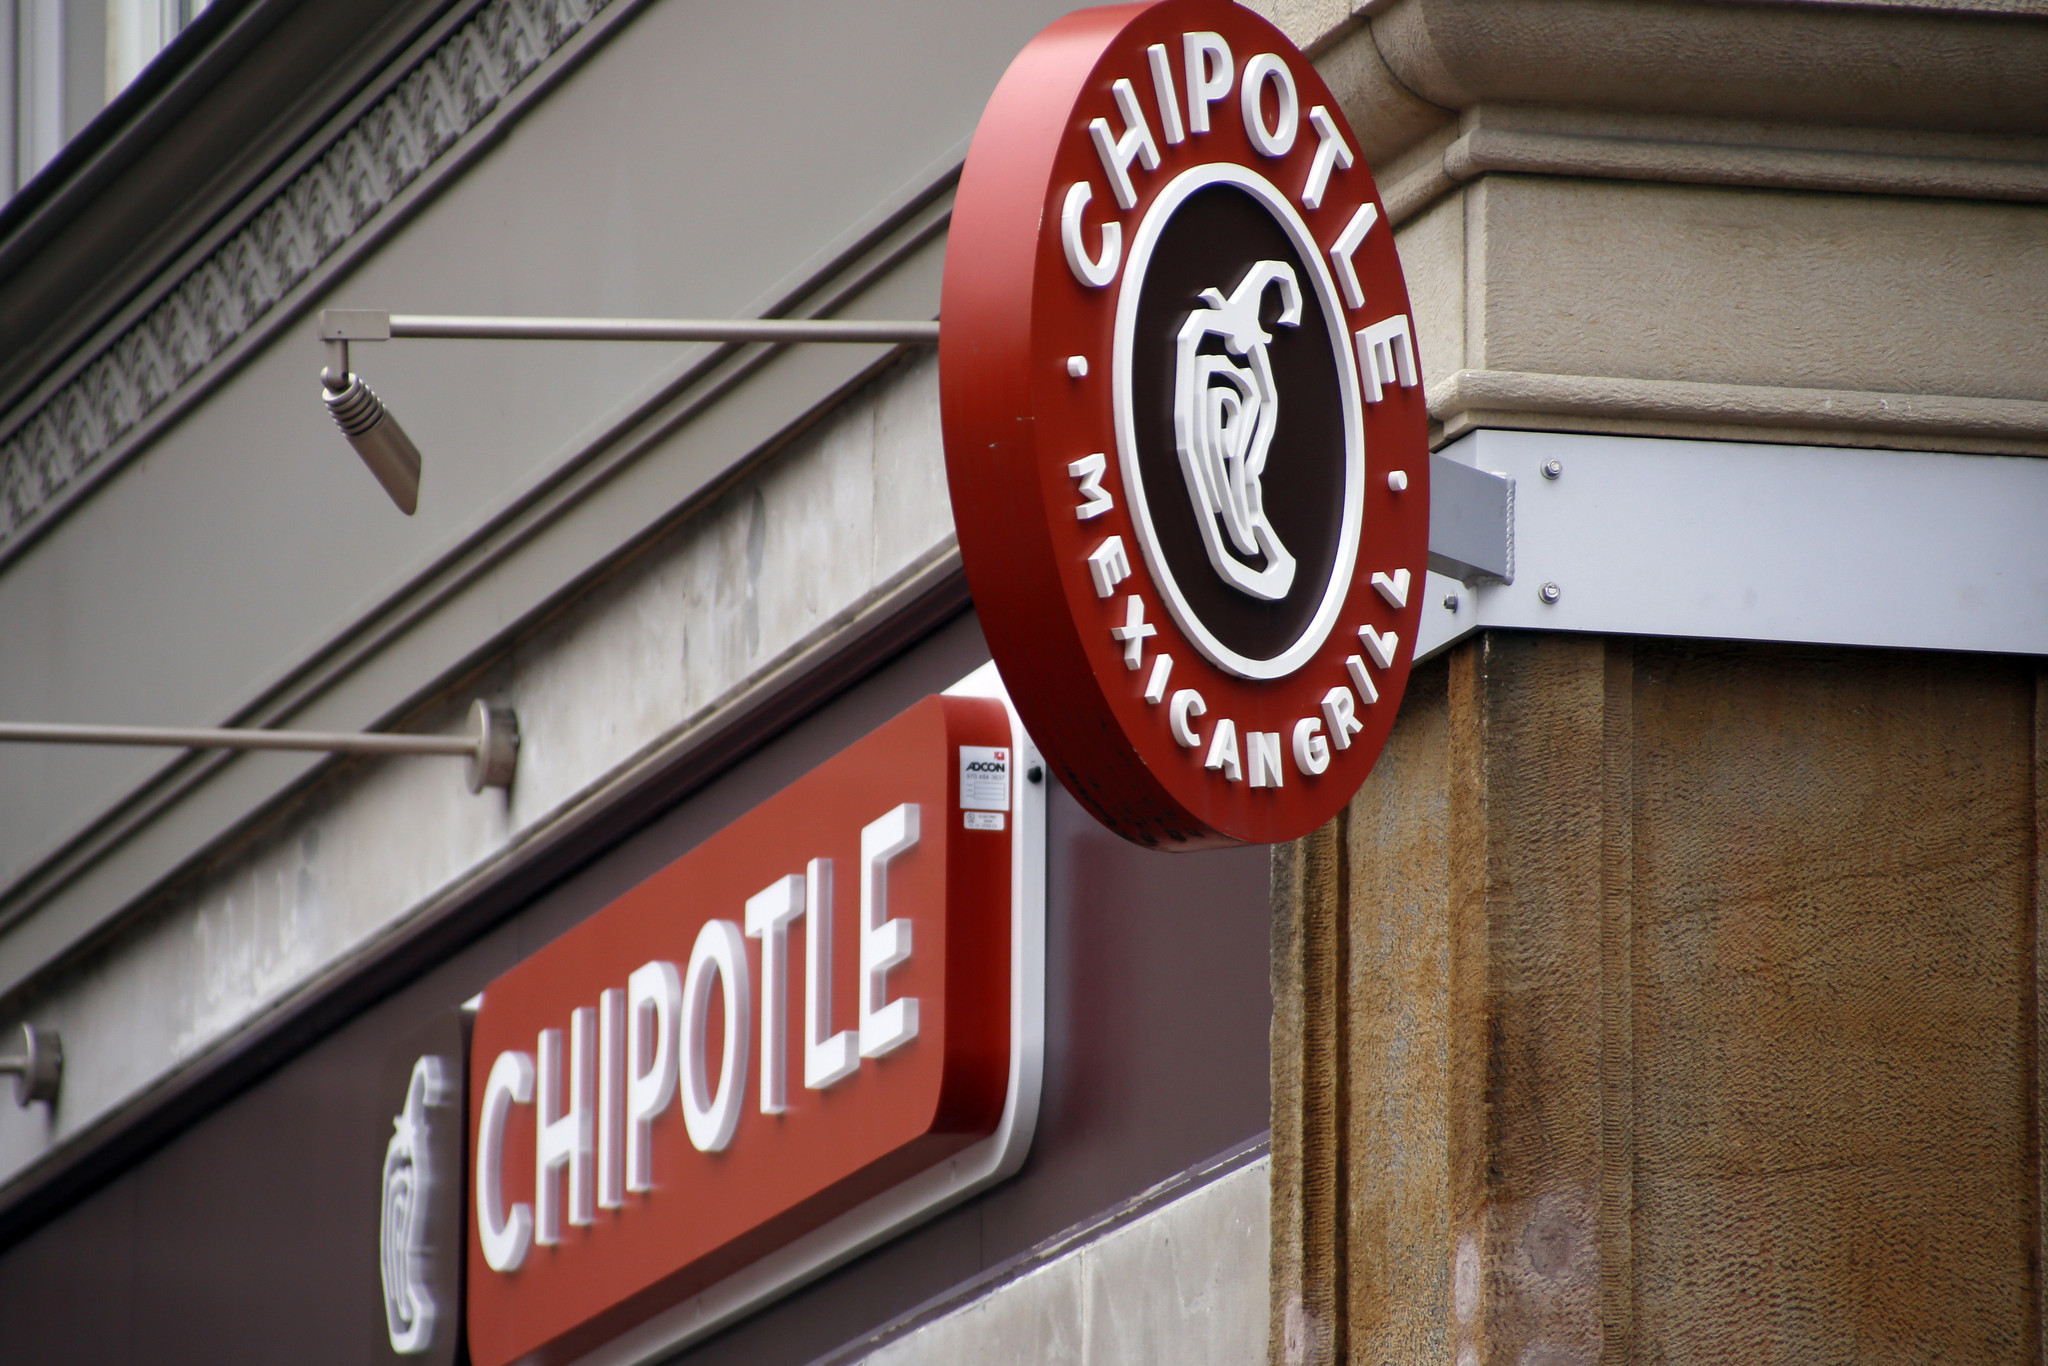 Chipotle sales fall for fifth straight quarter - Chicago Tribune